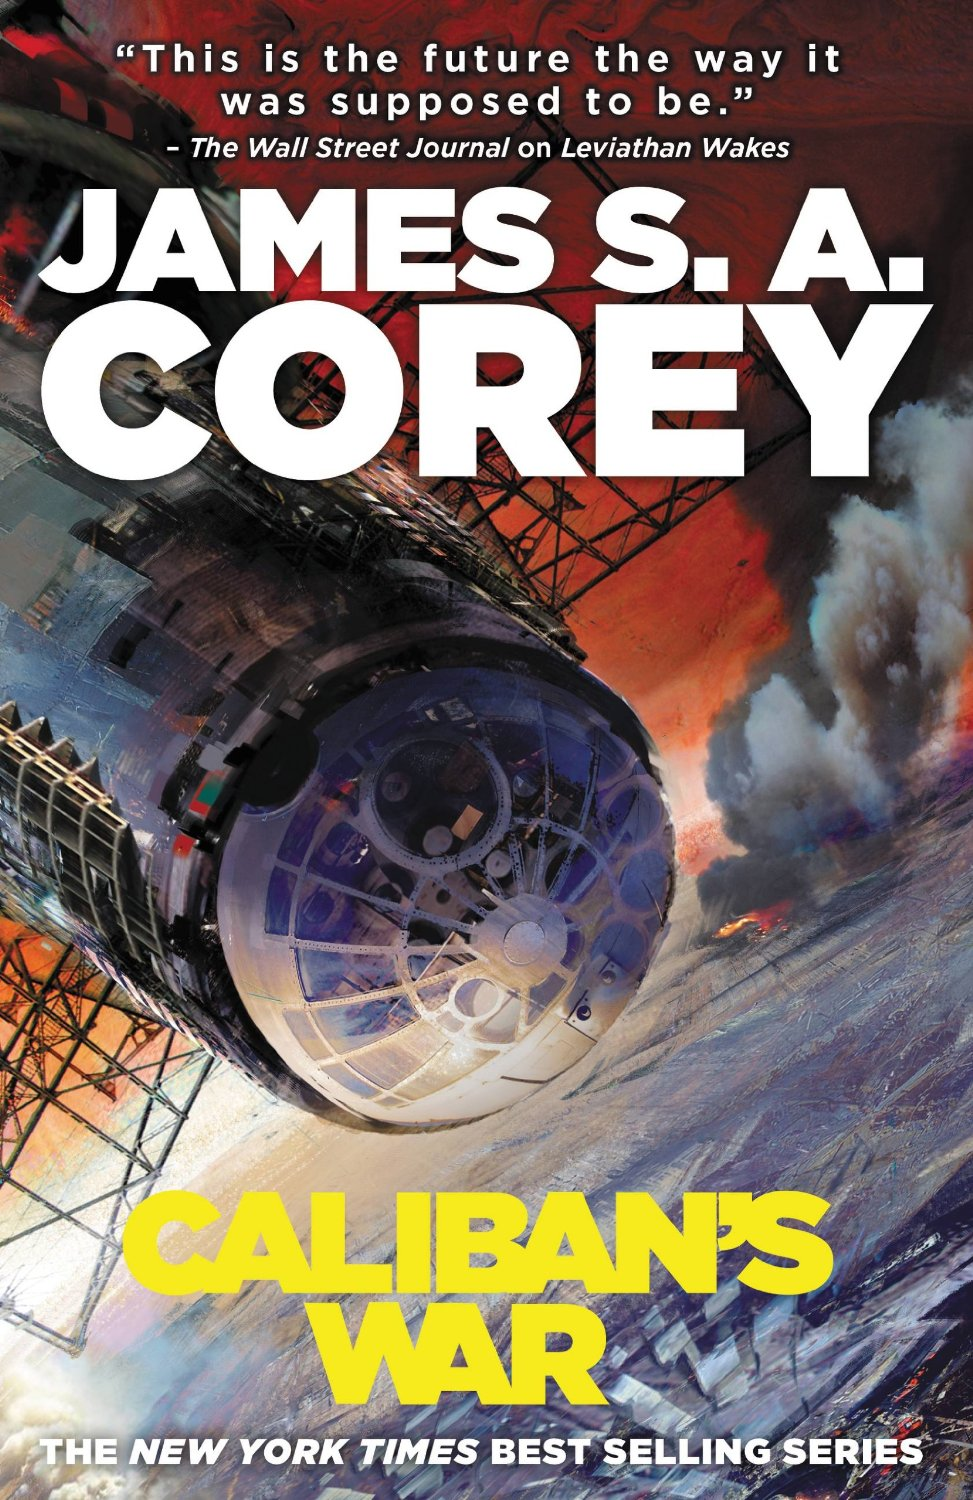 Friday Reads: Caliban's War by James S.A.Corey